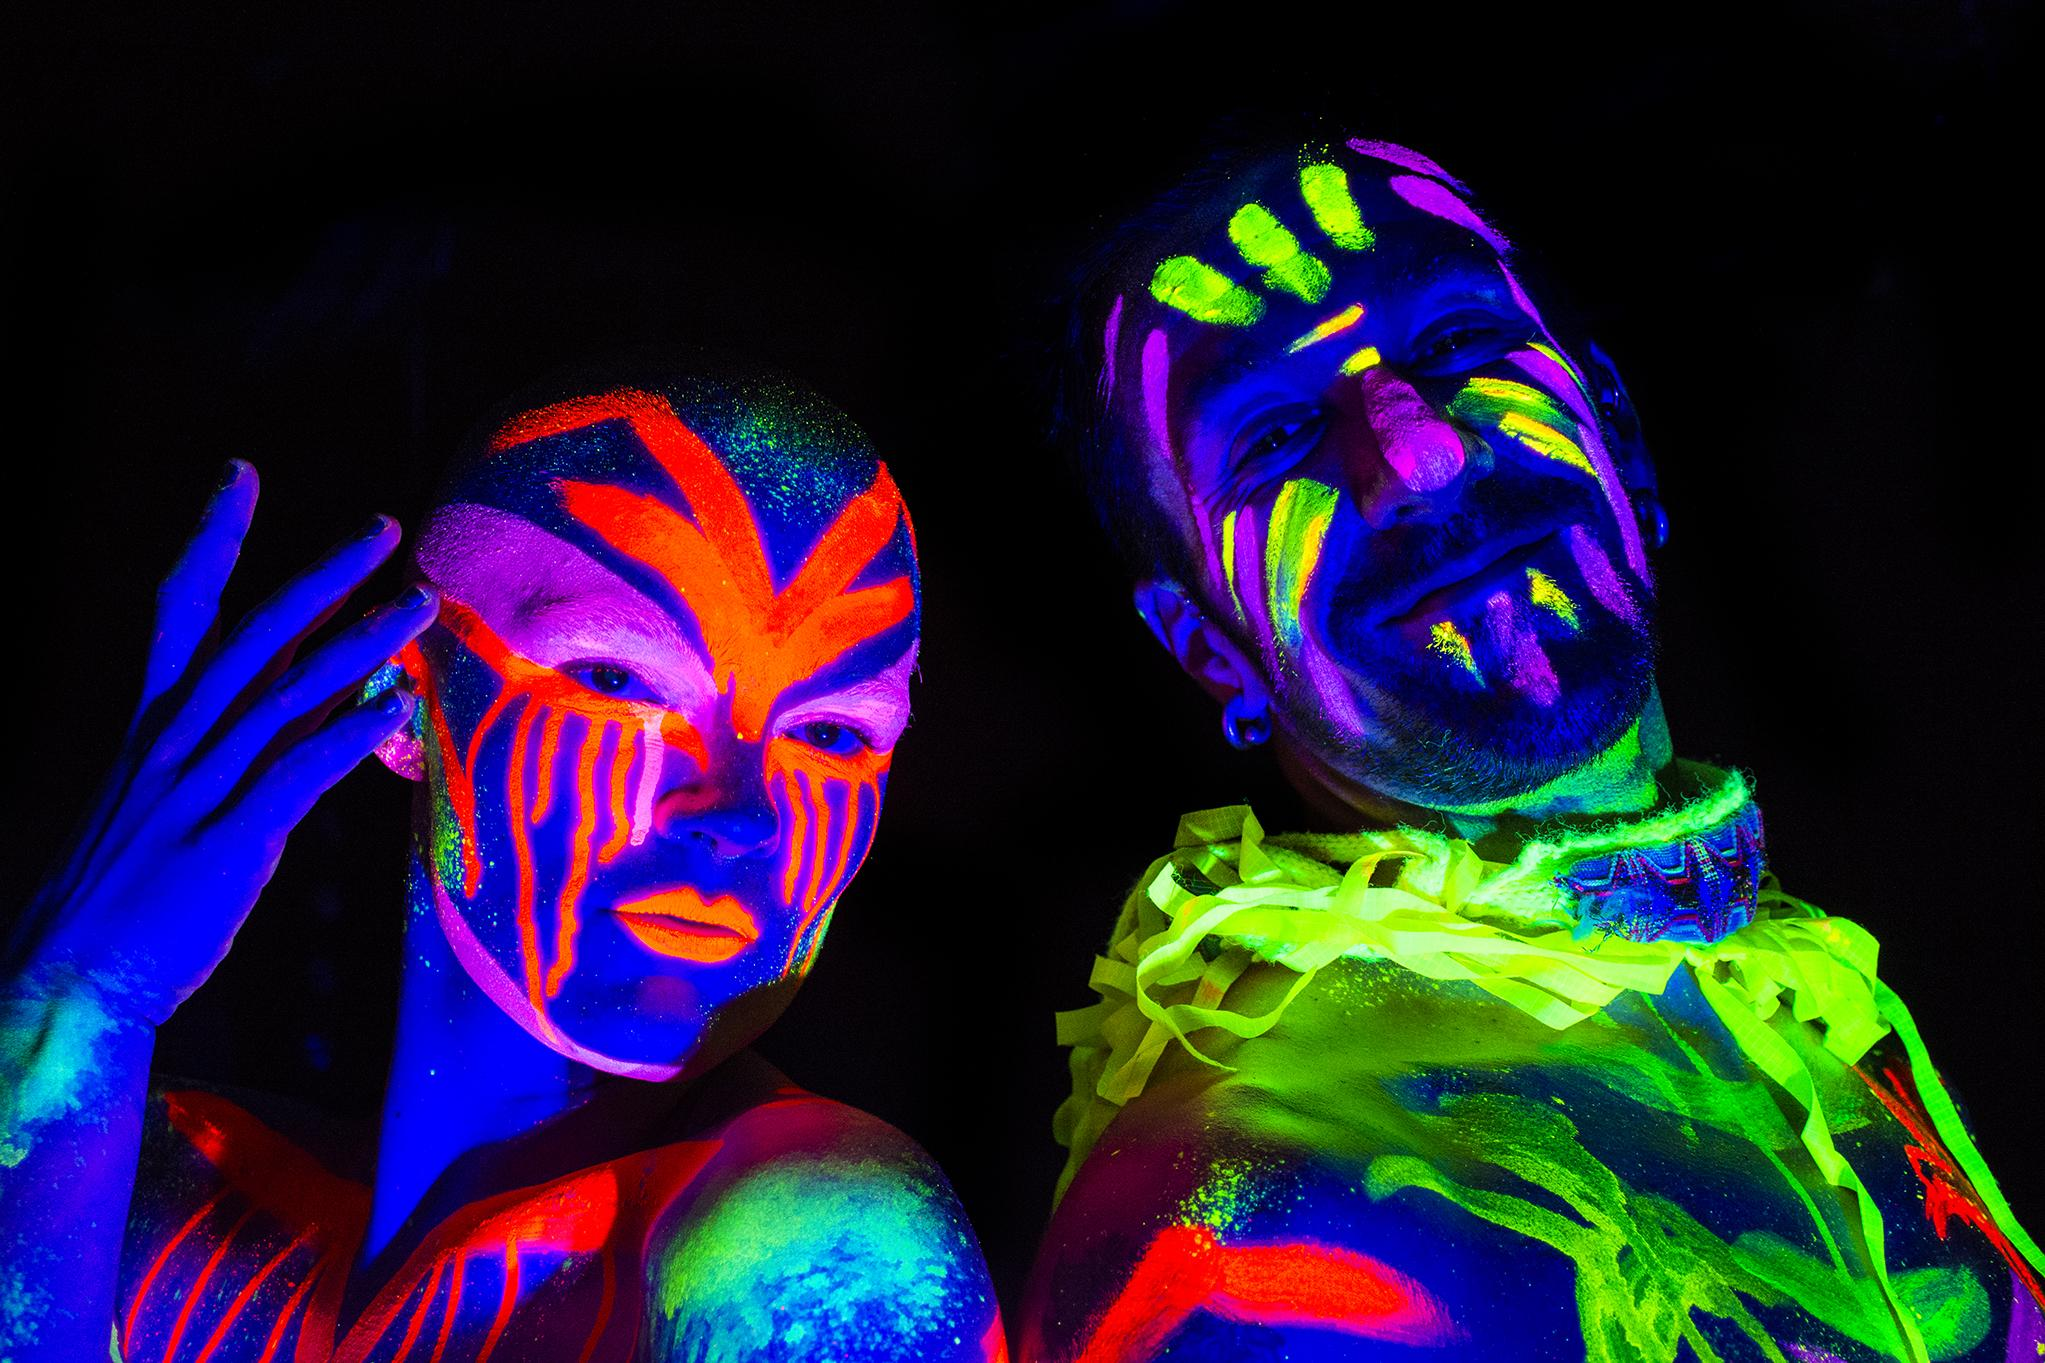 Drink, Shop & Do Host Neon Naked Life Drawing!